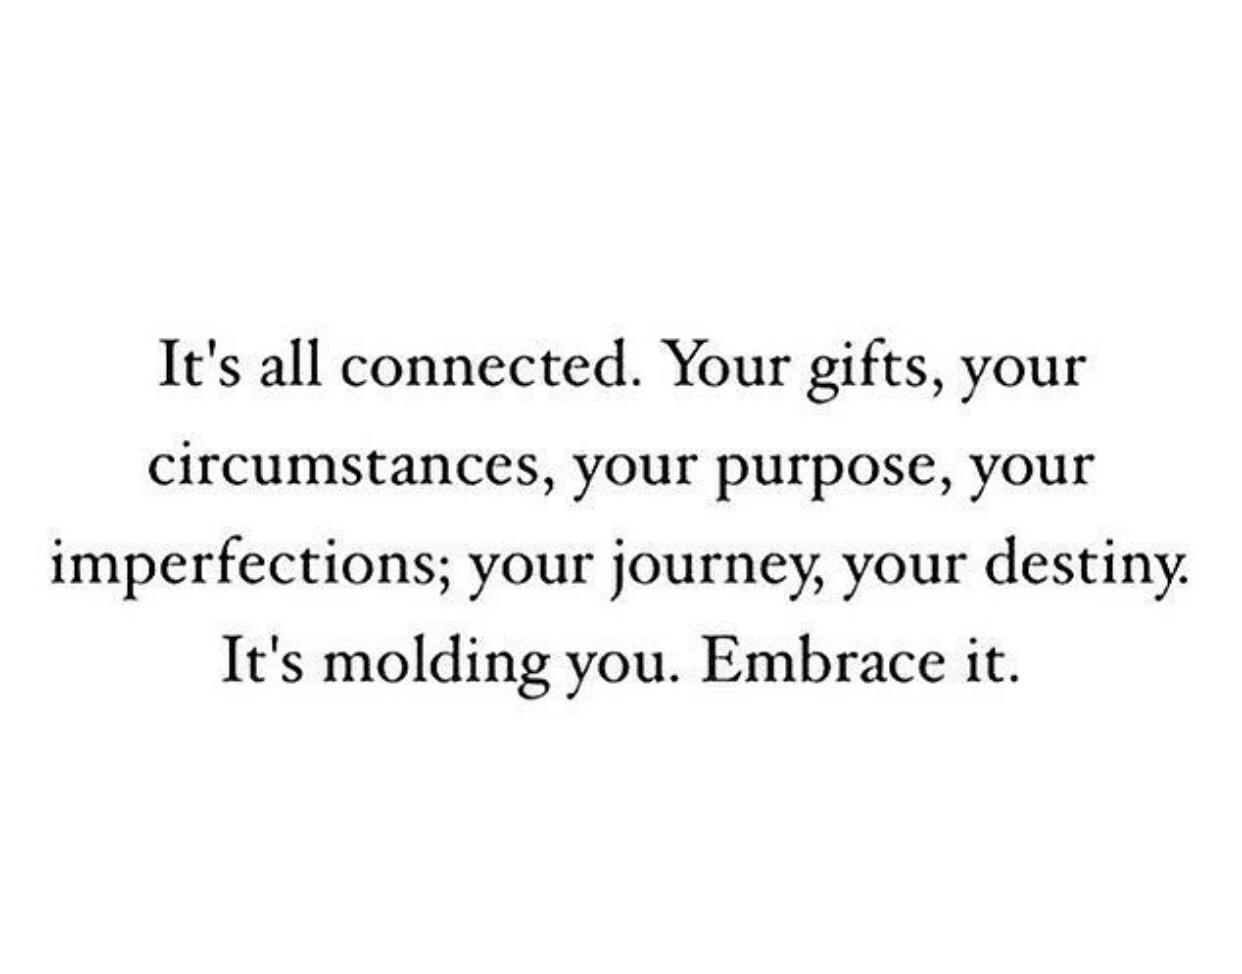 [IMAGE] Embrace it